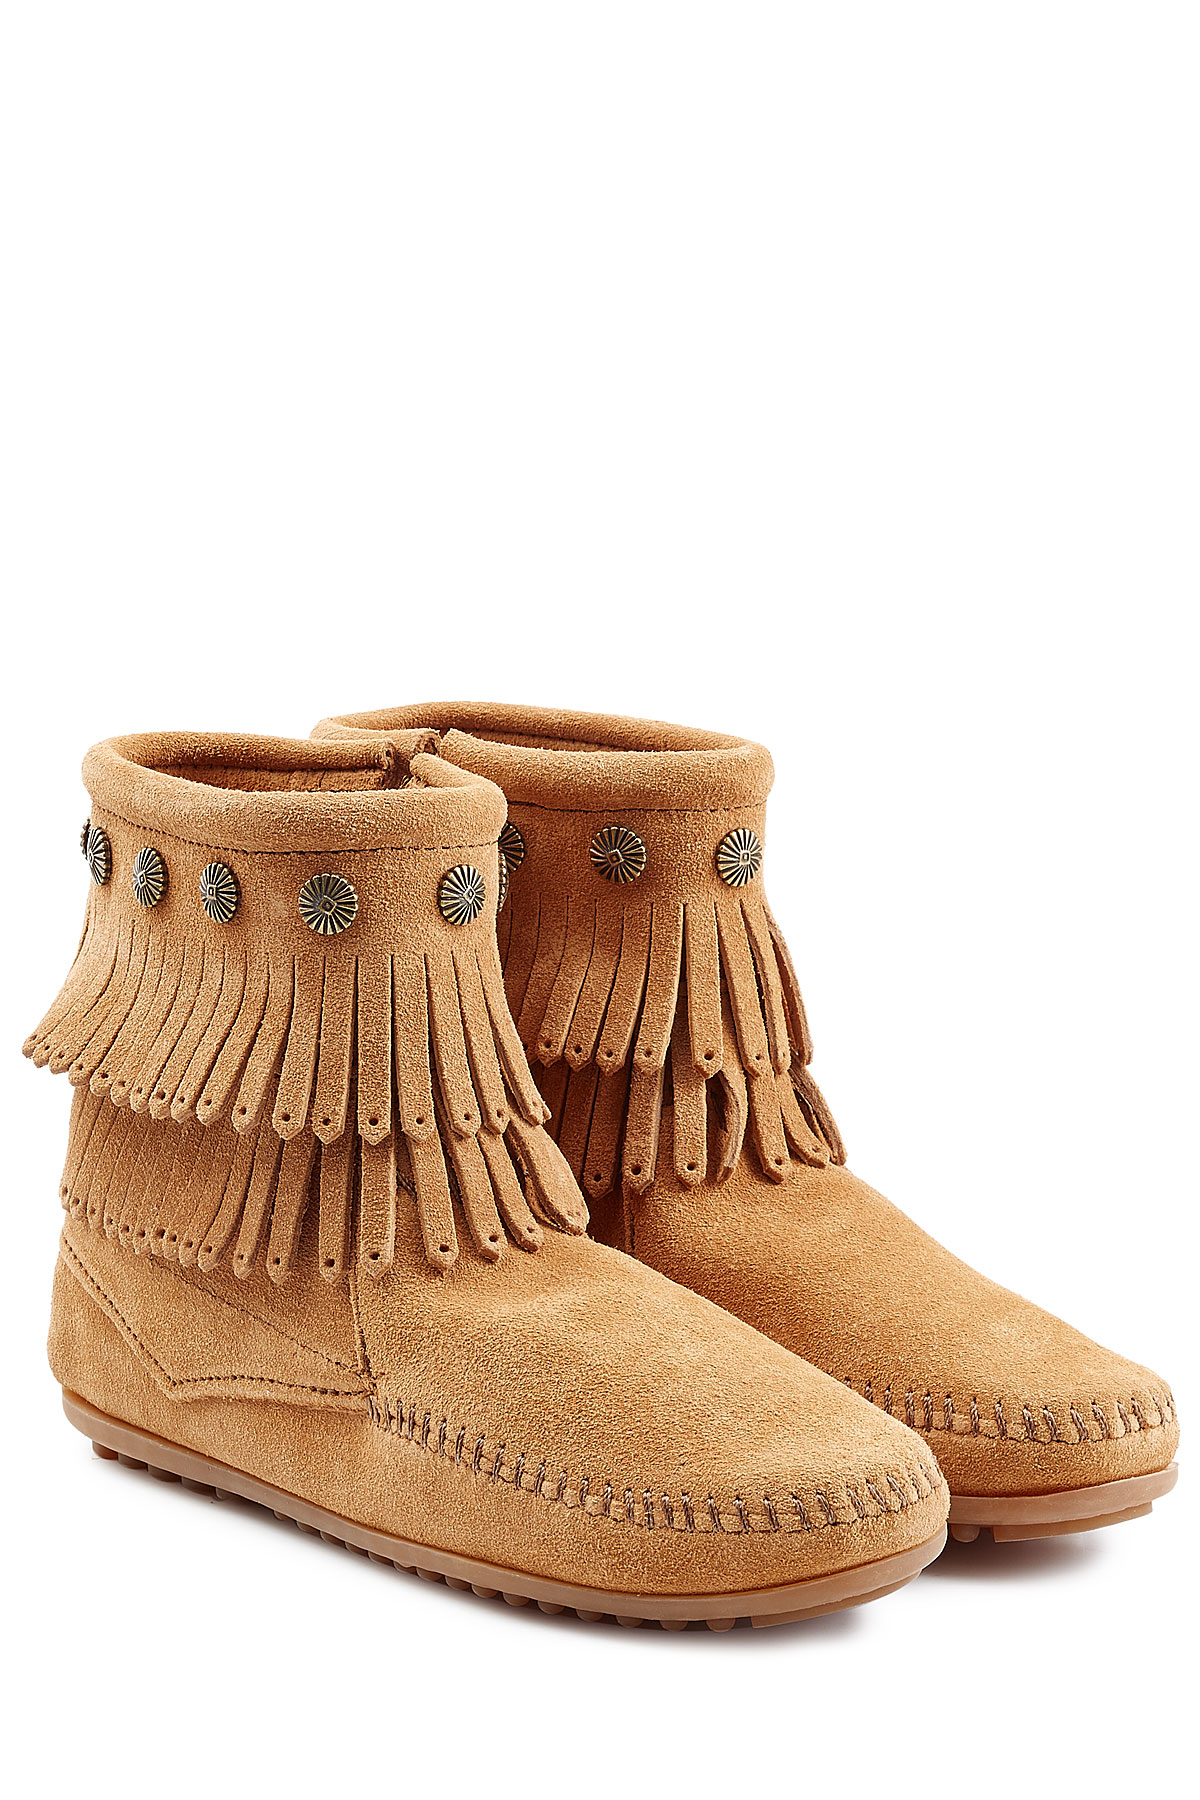 minnetonka concho fringed suede ankle boots with studs in